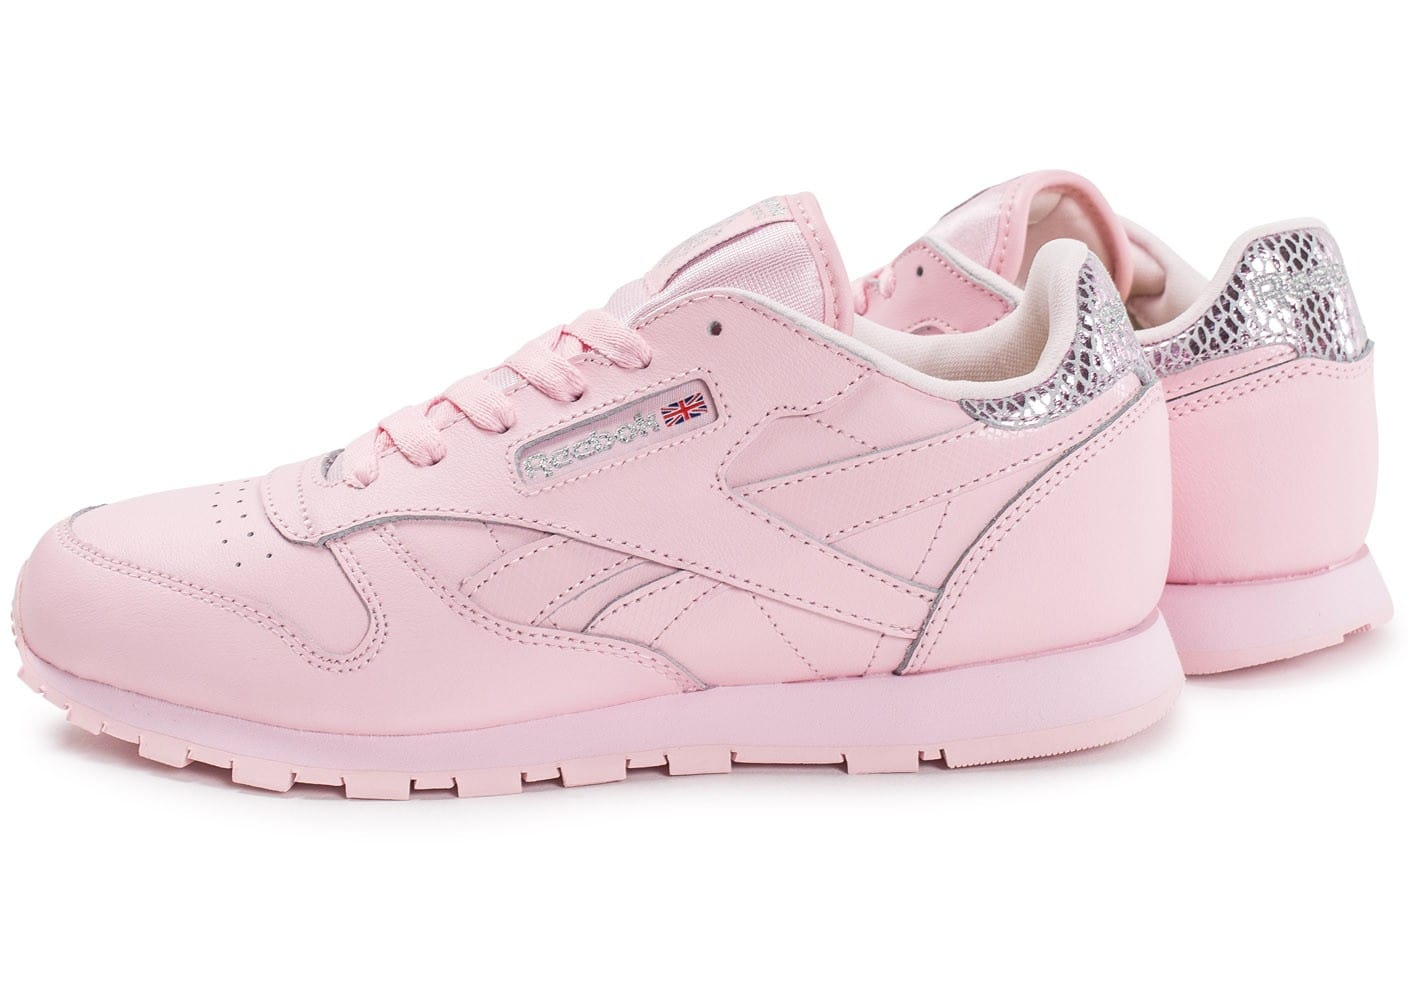 reebok classic leather metallic rose chaussures femme chausport. Black Bedroom Furniture Sets. Home Design Ideas